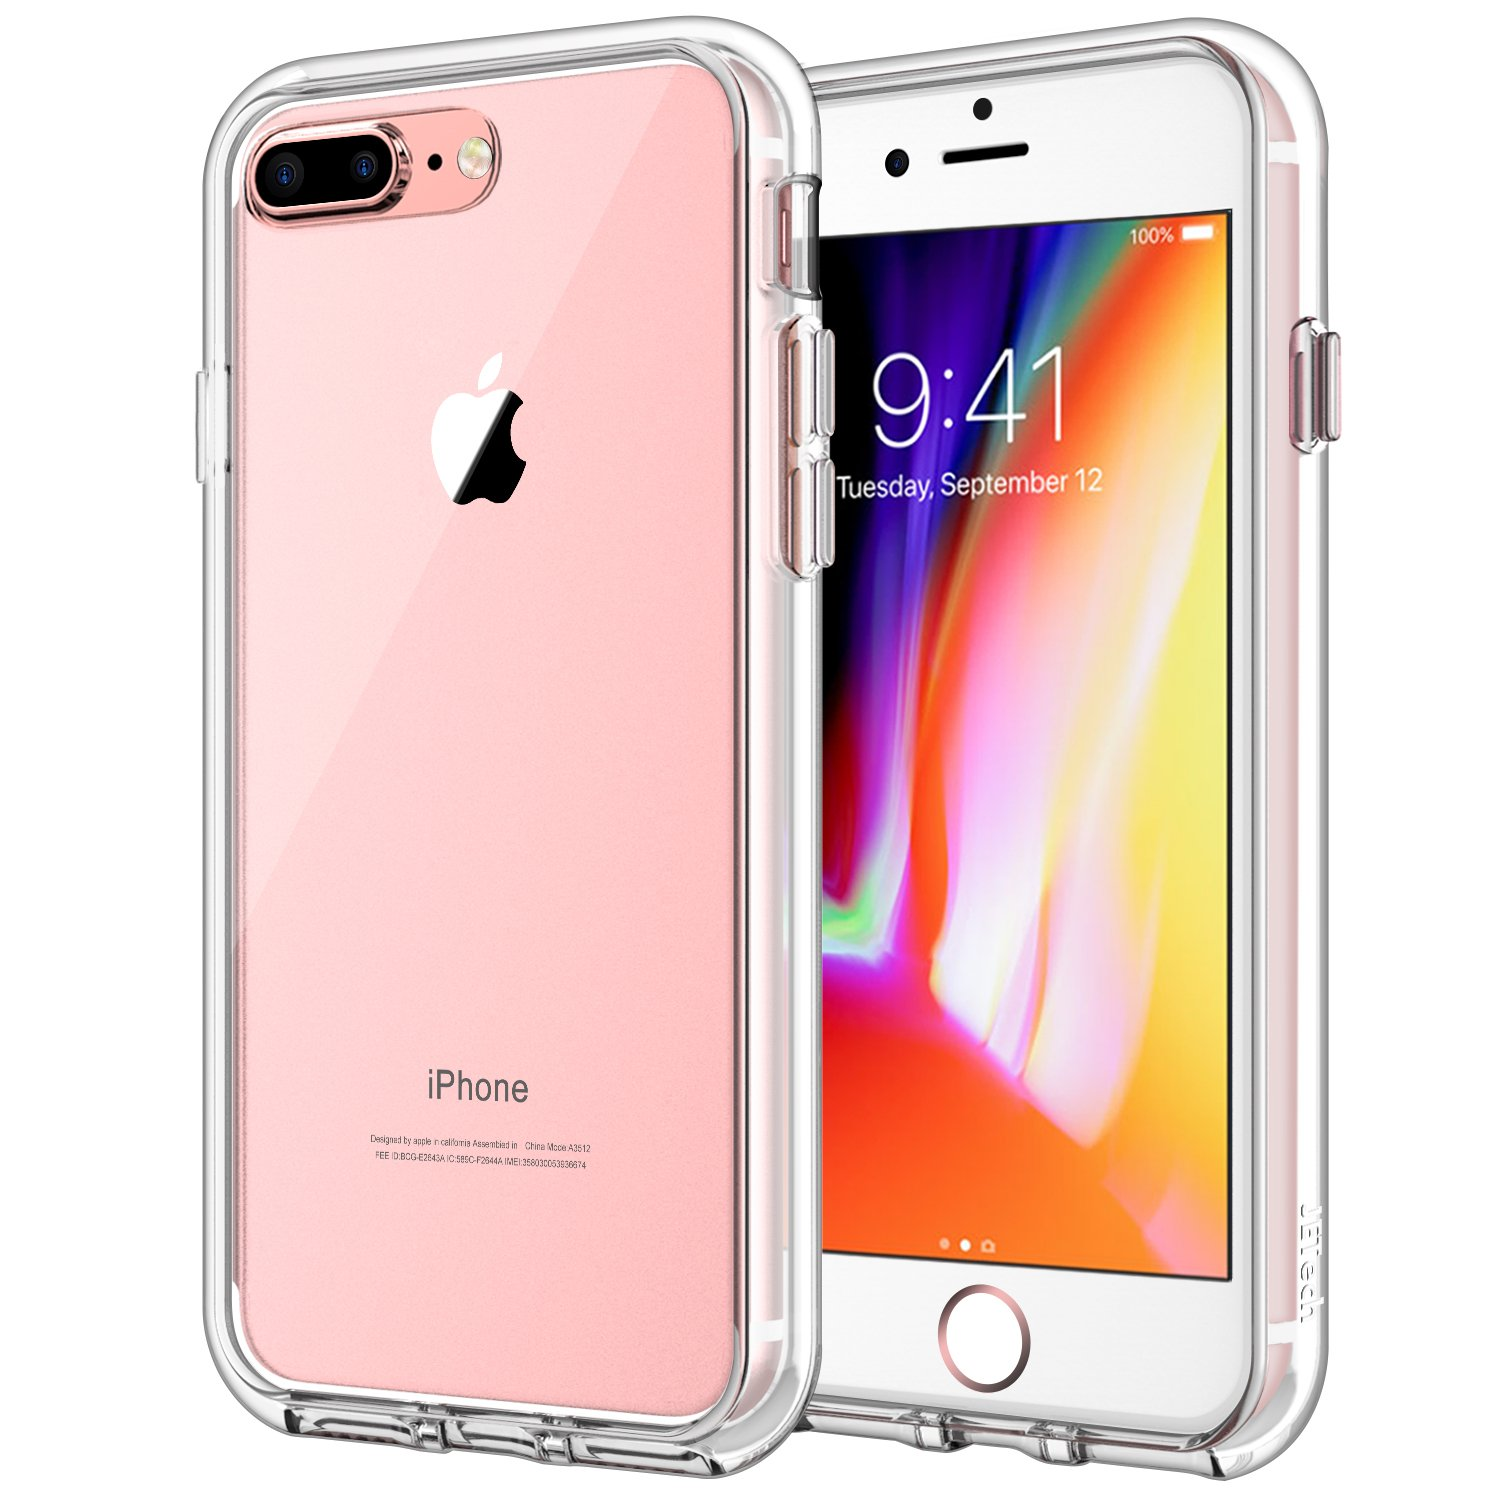 iphone 7 plus cases amazon co uk